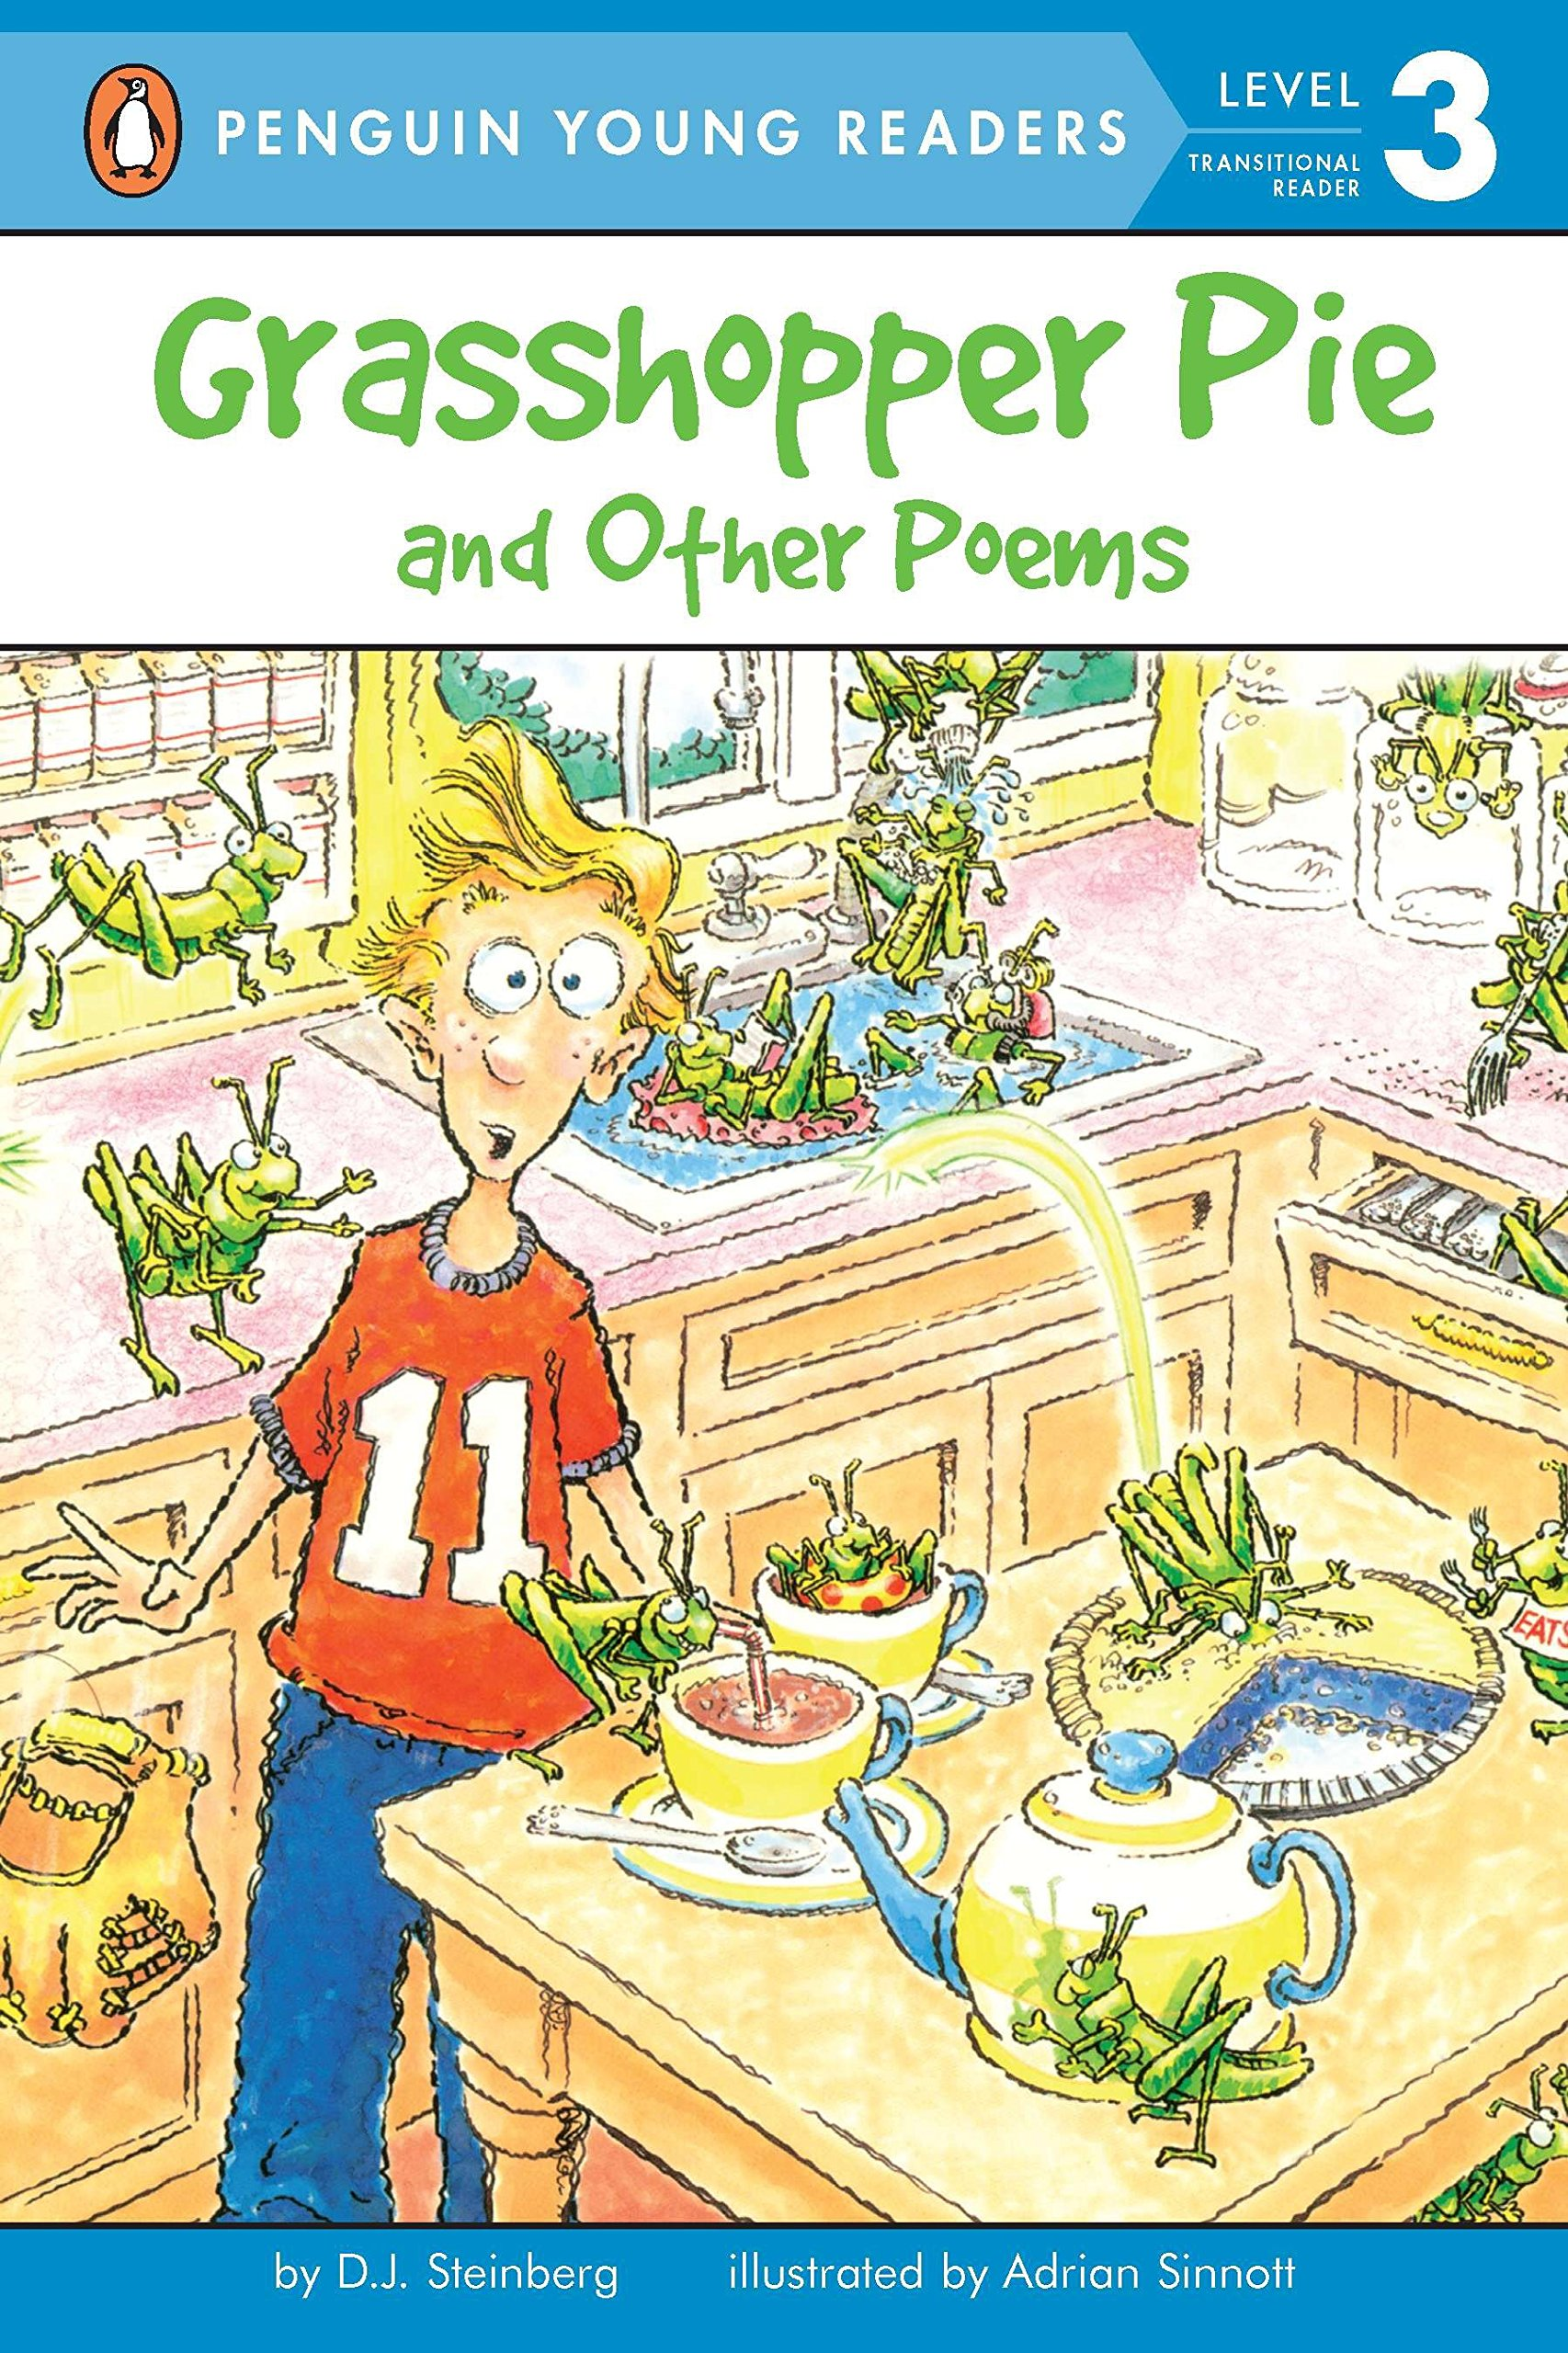 Buy Grasshopper Pie and Other Poems (Penguin Young Readers, Level 3) Book  Online at Low Prices in India | Grasshopper Pie and Other Poems (Penguin  Young ...